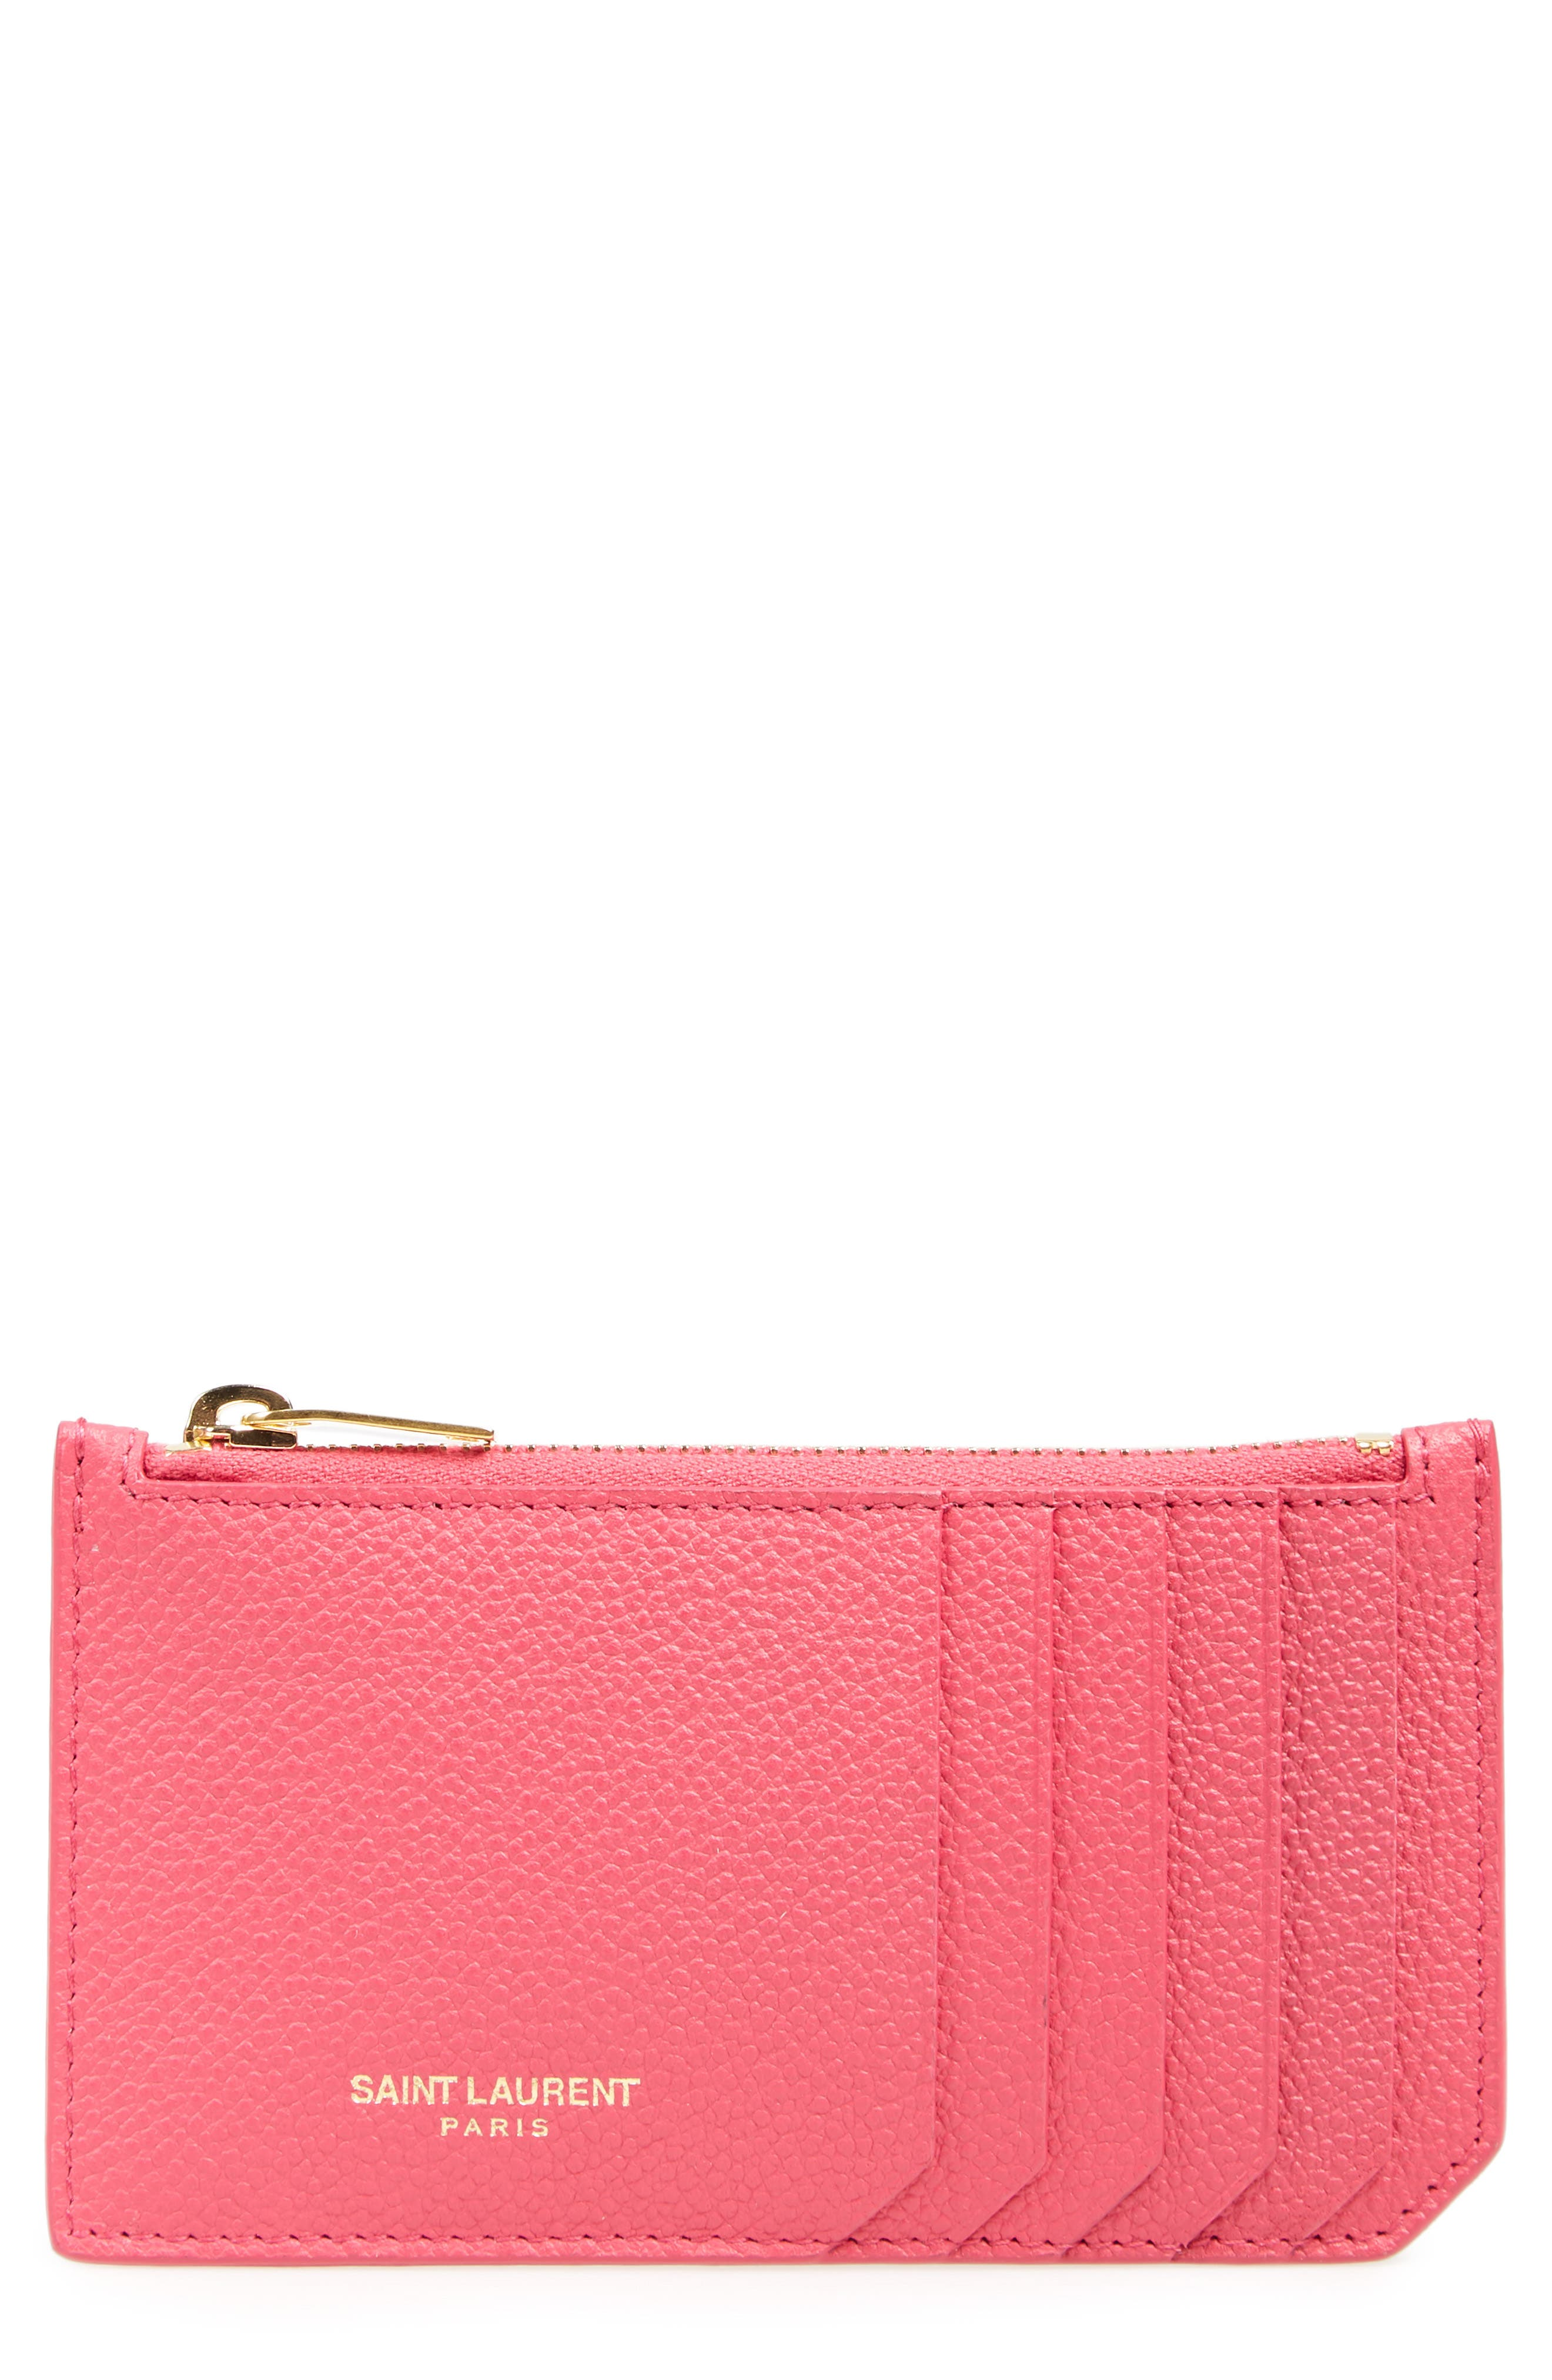 Leather Card Case,                         Main,                         color, SHOCKING PINK